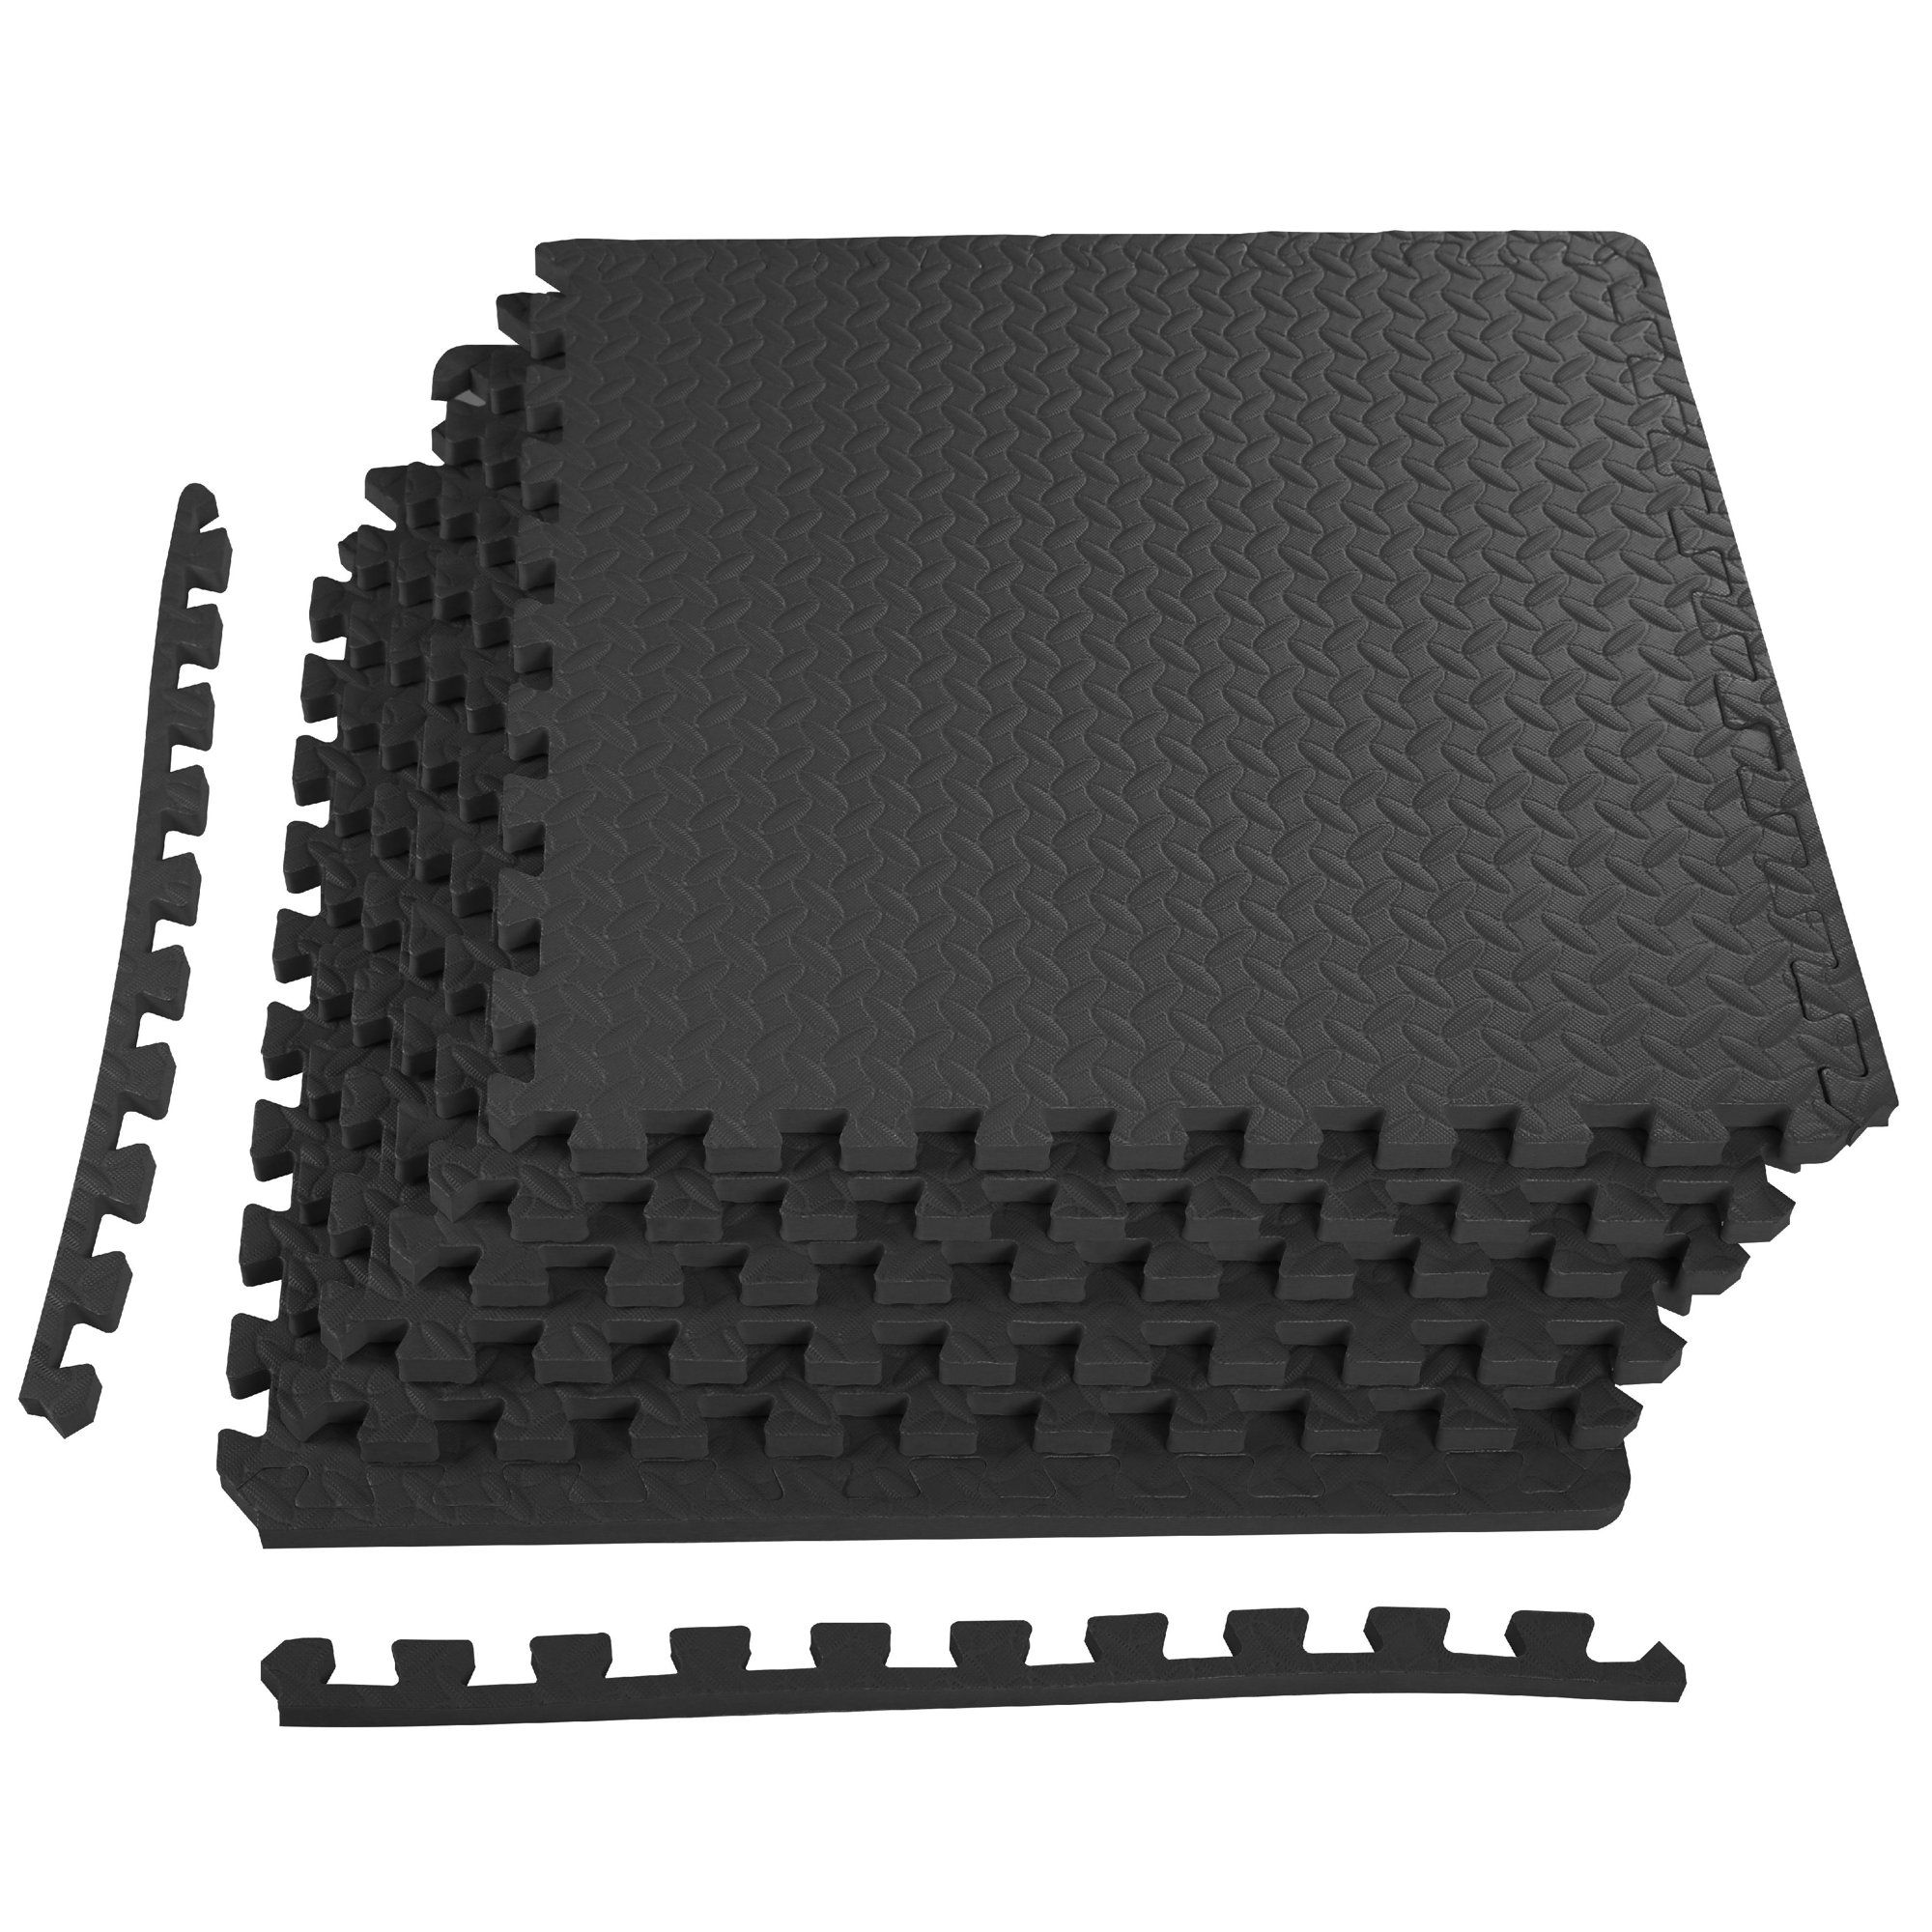 3 4 Inch Super Extra Thick Eva Foam Mat With Interlocking Tiles 24 Square Feet For Home Gym Protective Mma Exercise Kids Babies Playroom Walmart Com In 2020 Interlocking Tile Mat Exercises Rubber Floor Tiles